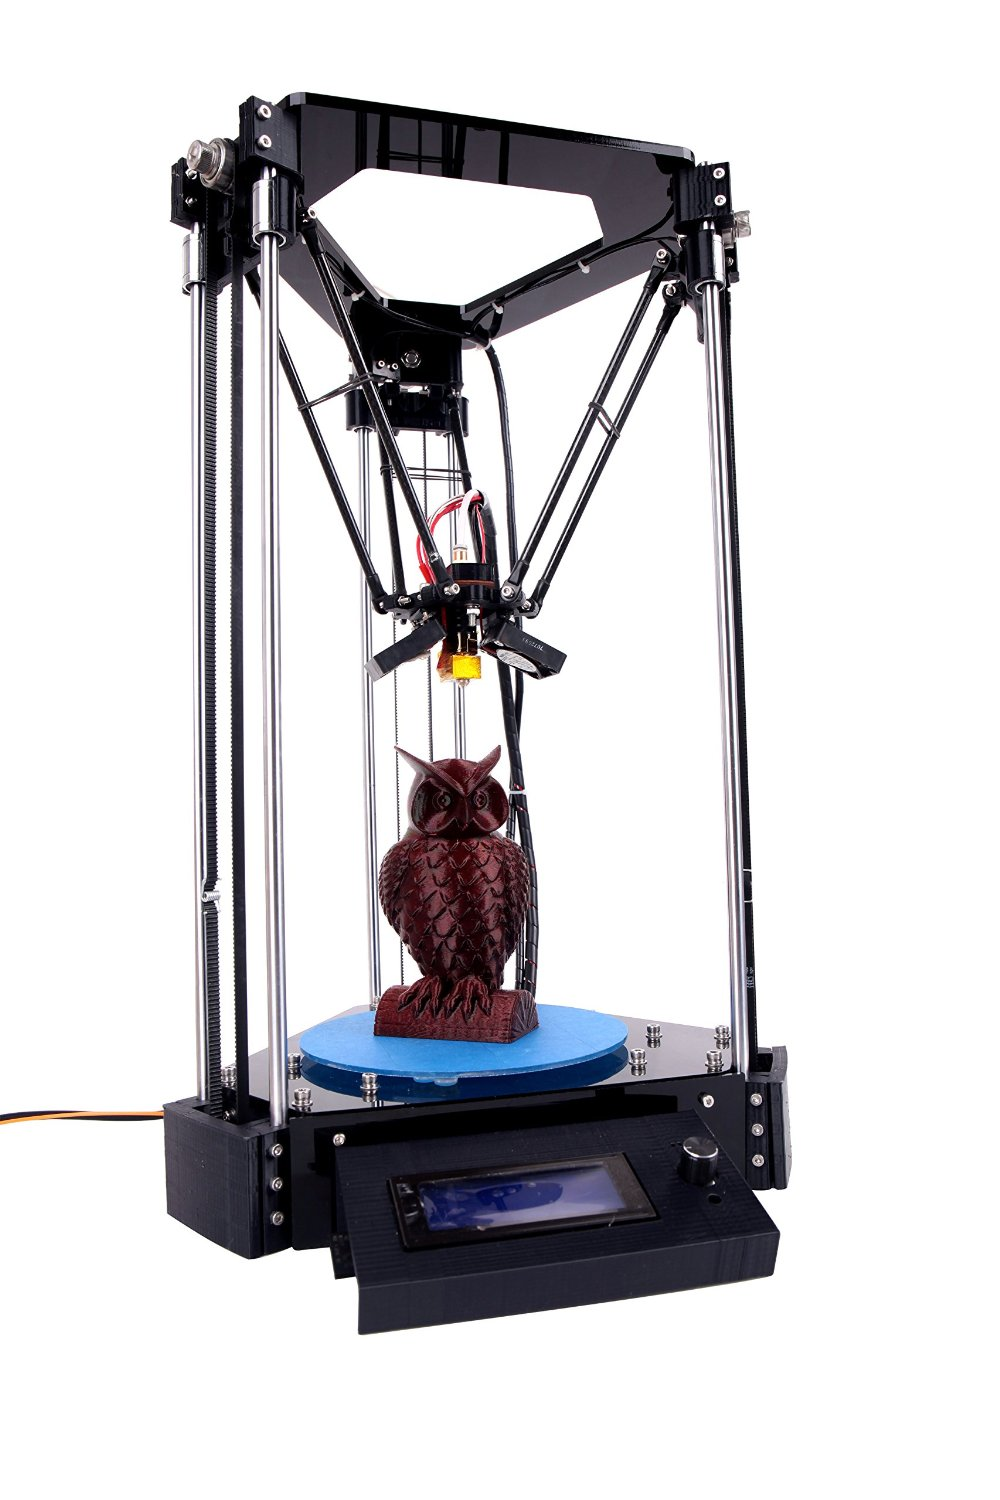 3D Printer SeeMeCNC Rostock MAX